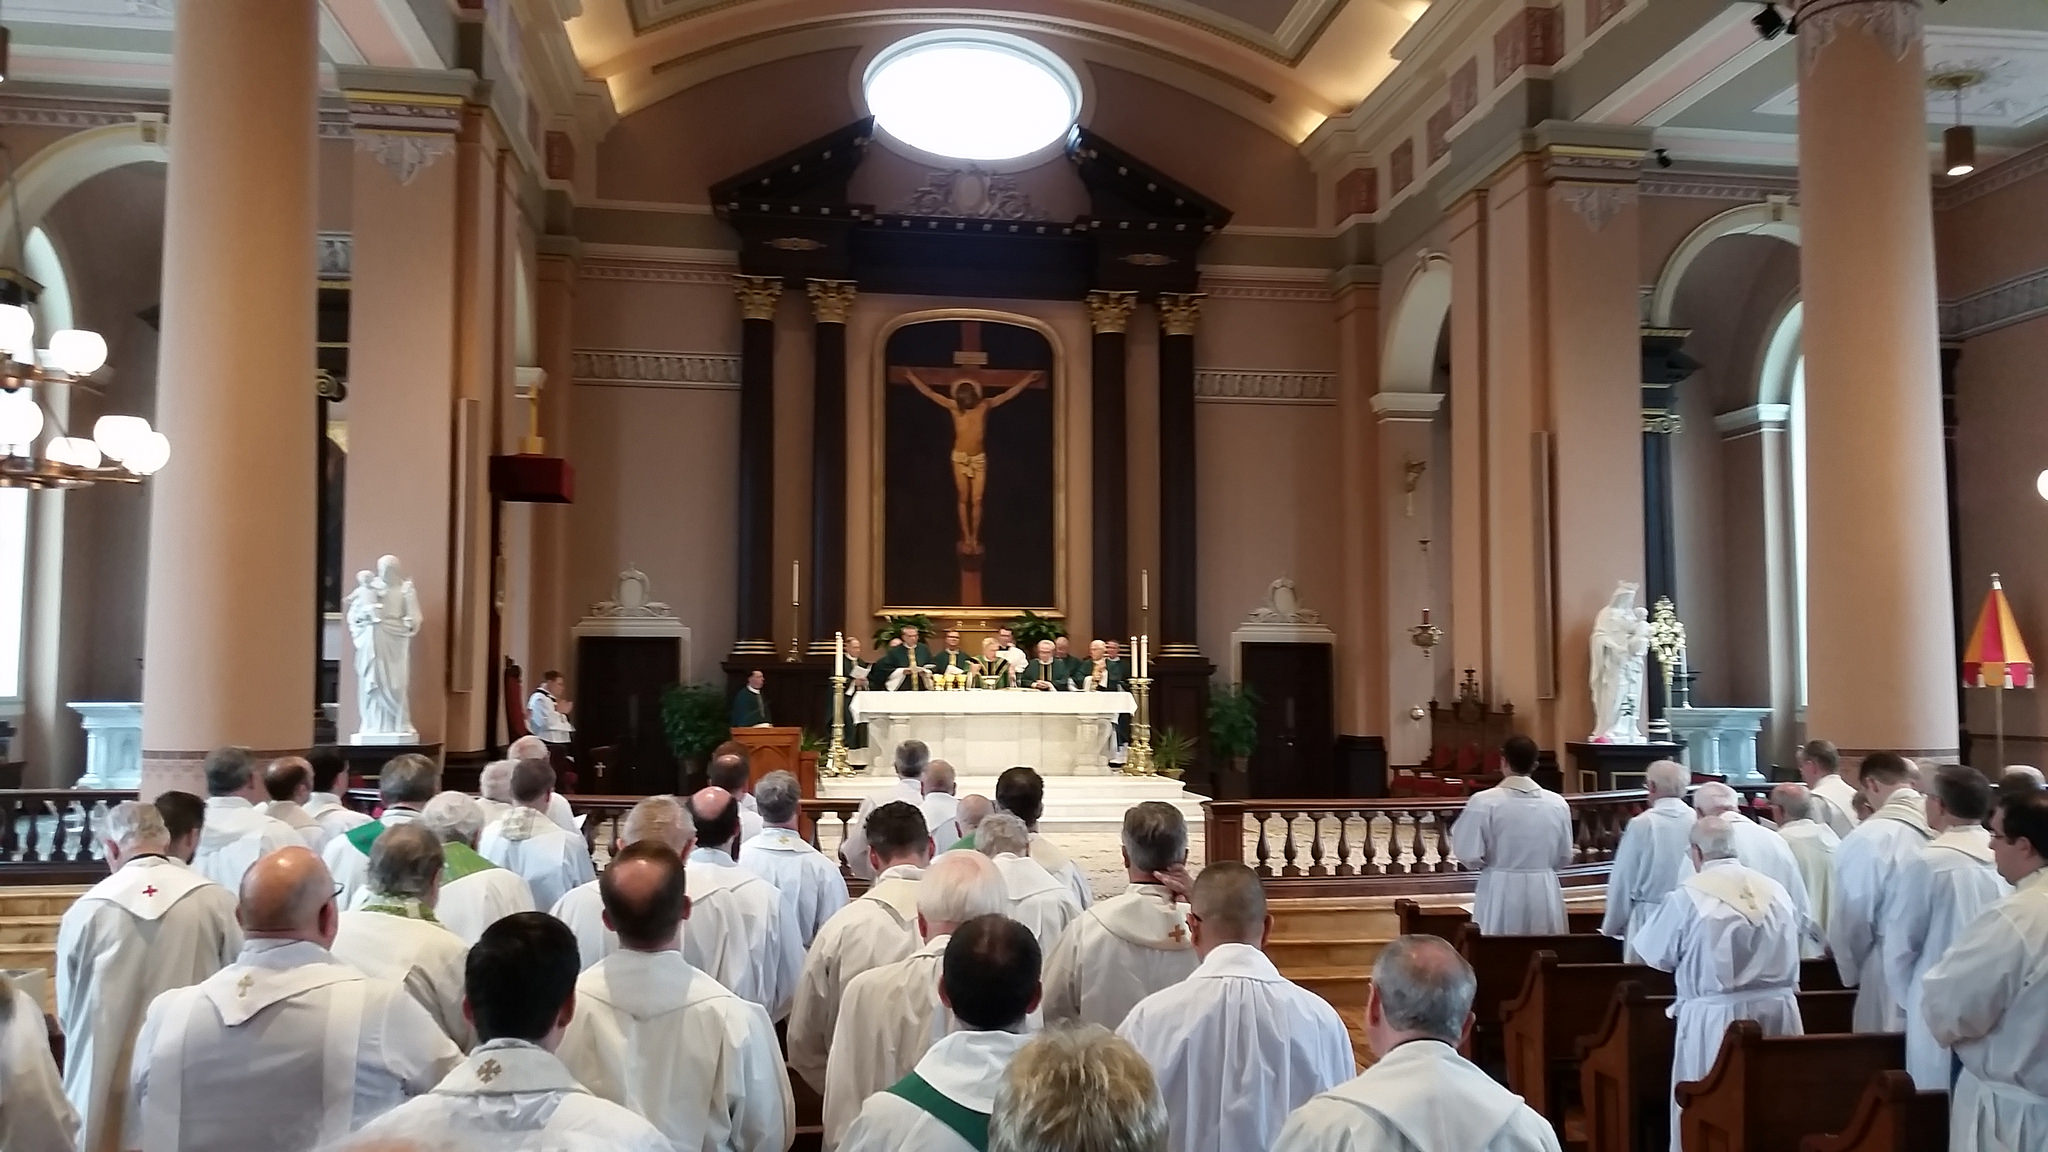 Mass at the Basilica of St. Louis